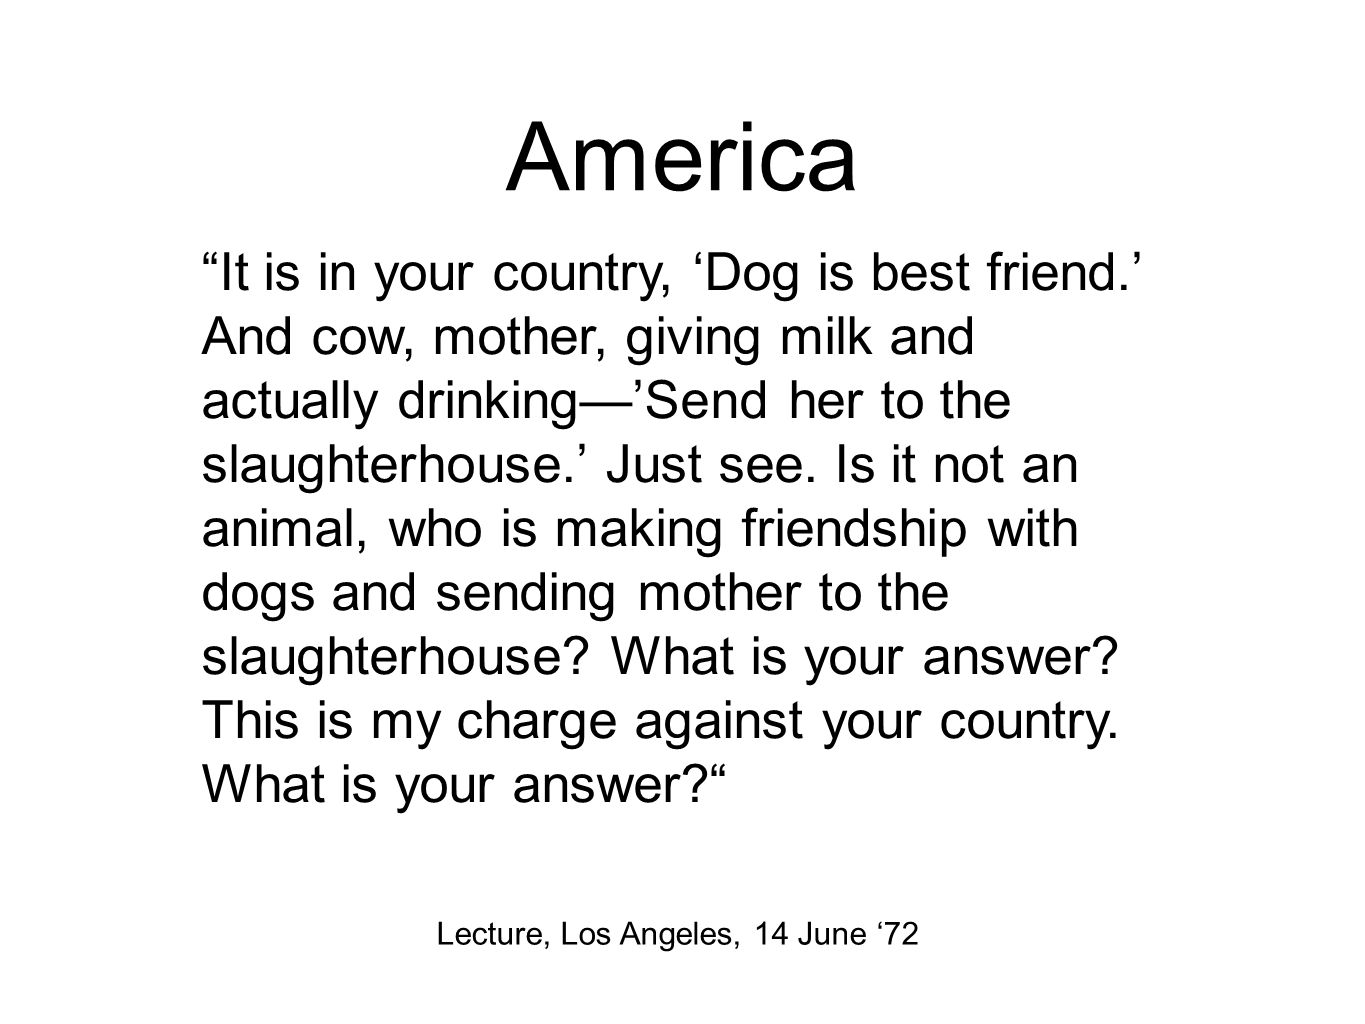 America Lecture, Los Angeles, 14 June '72 It is in your country, 'Dog is best friend.' And cow, mother, giving milk and actually drinking—'Send her to the slaughterhouse.' Just see.